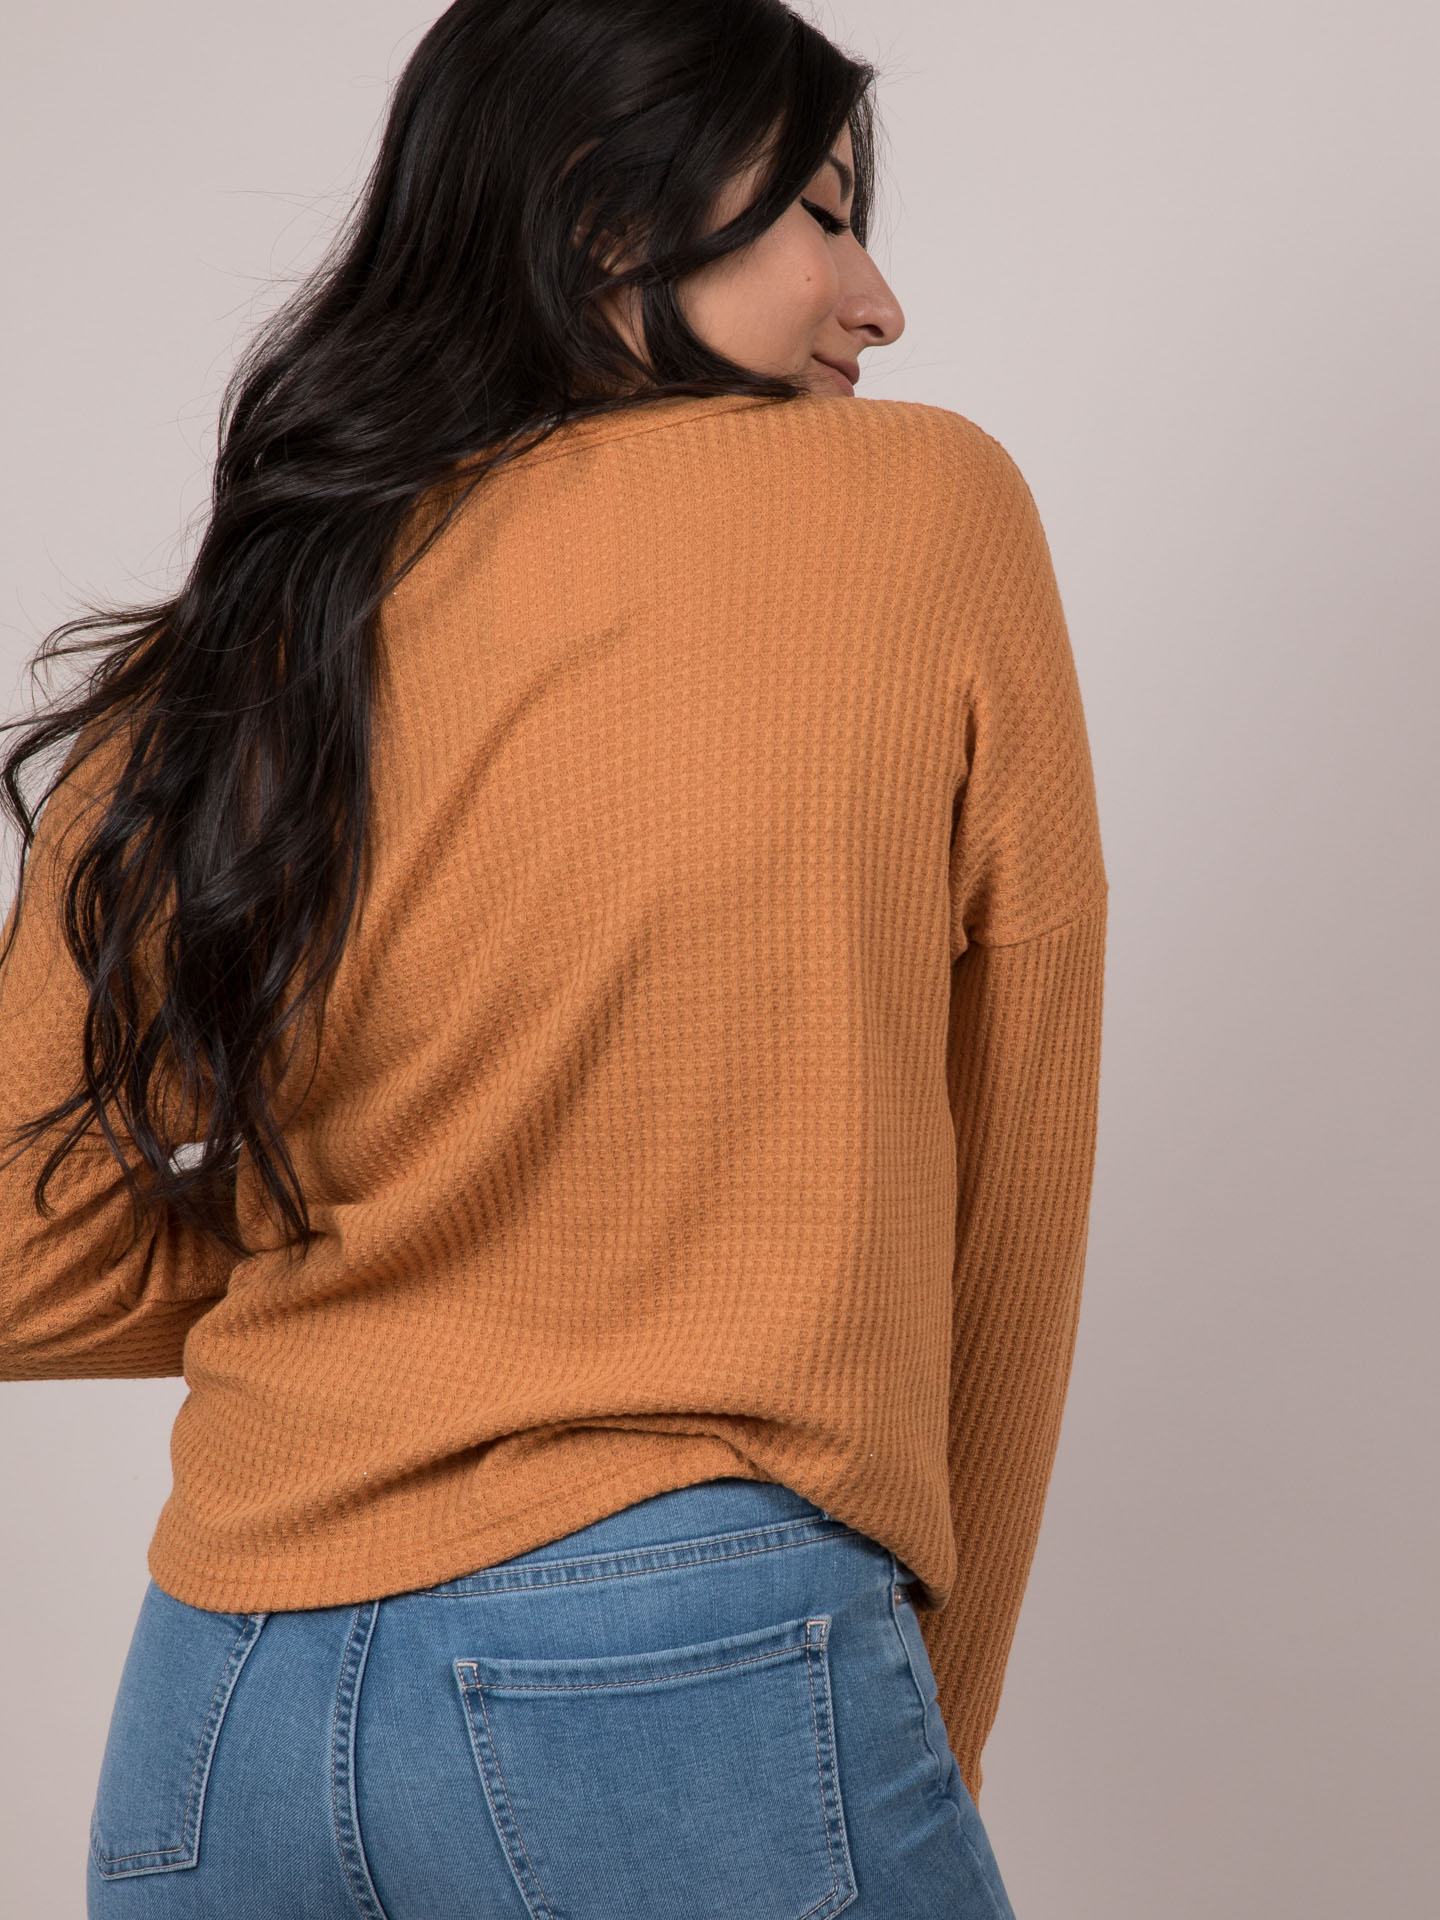 Arya Waffle Top String Cinched Middle Long Sleeve